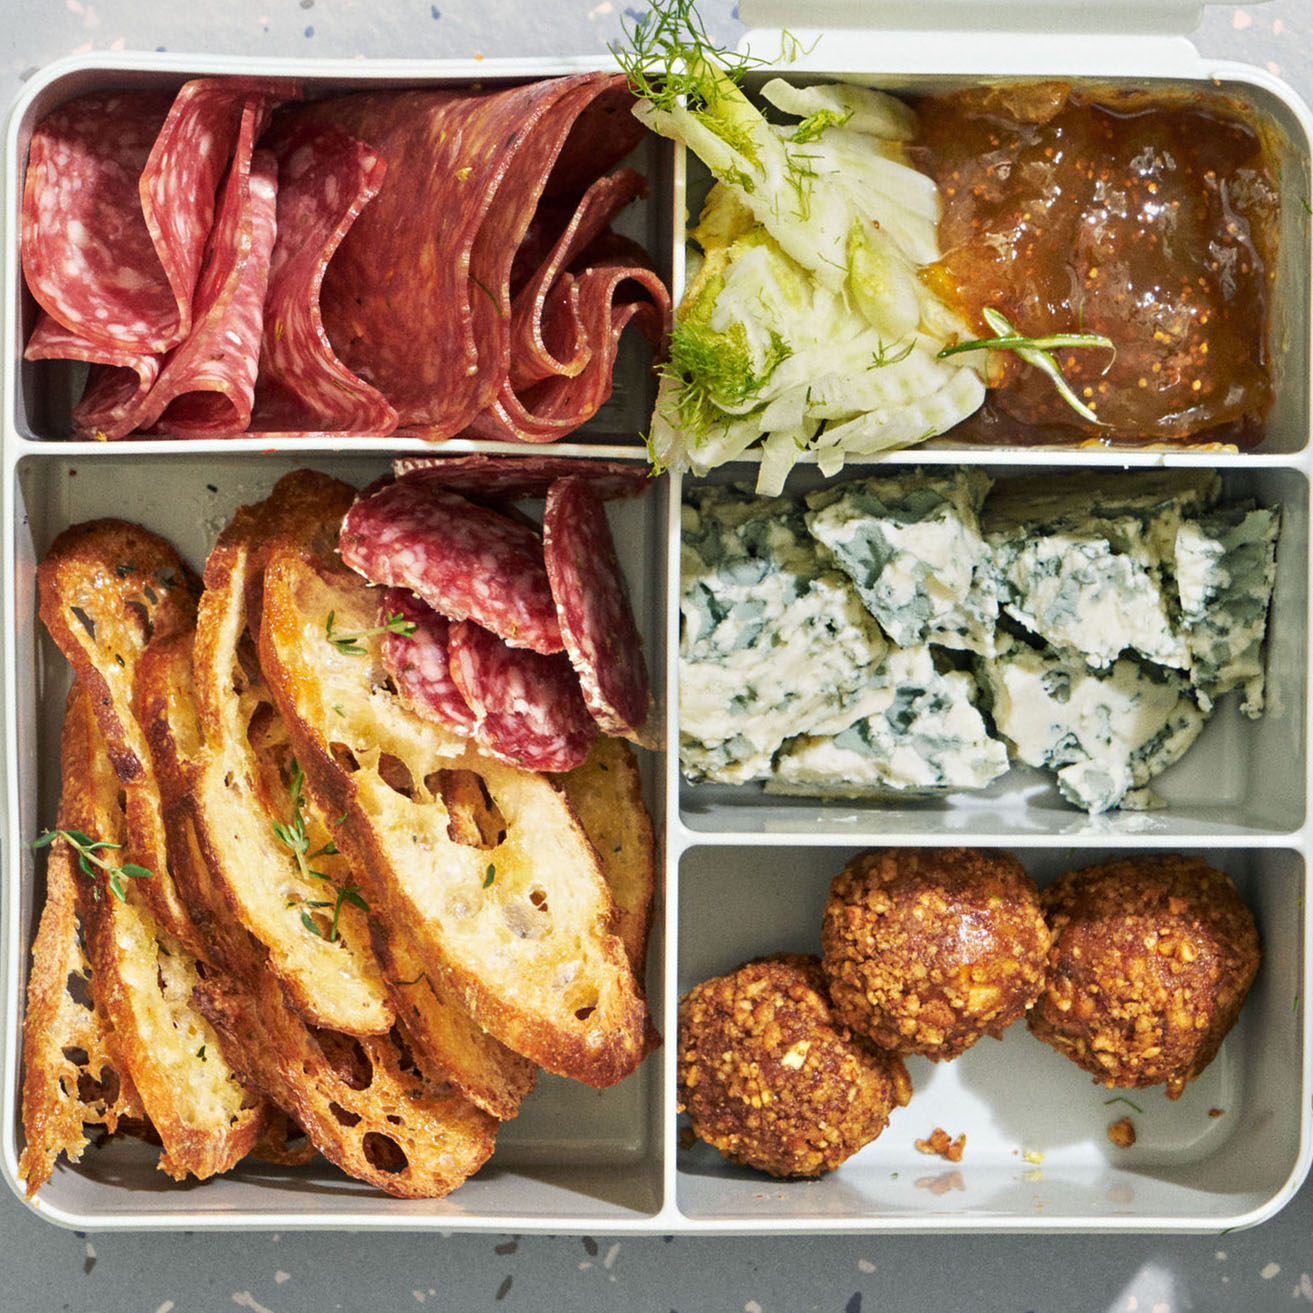 toast meats and cheeses served in a bento box